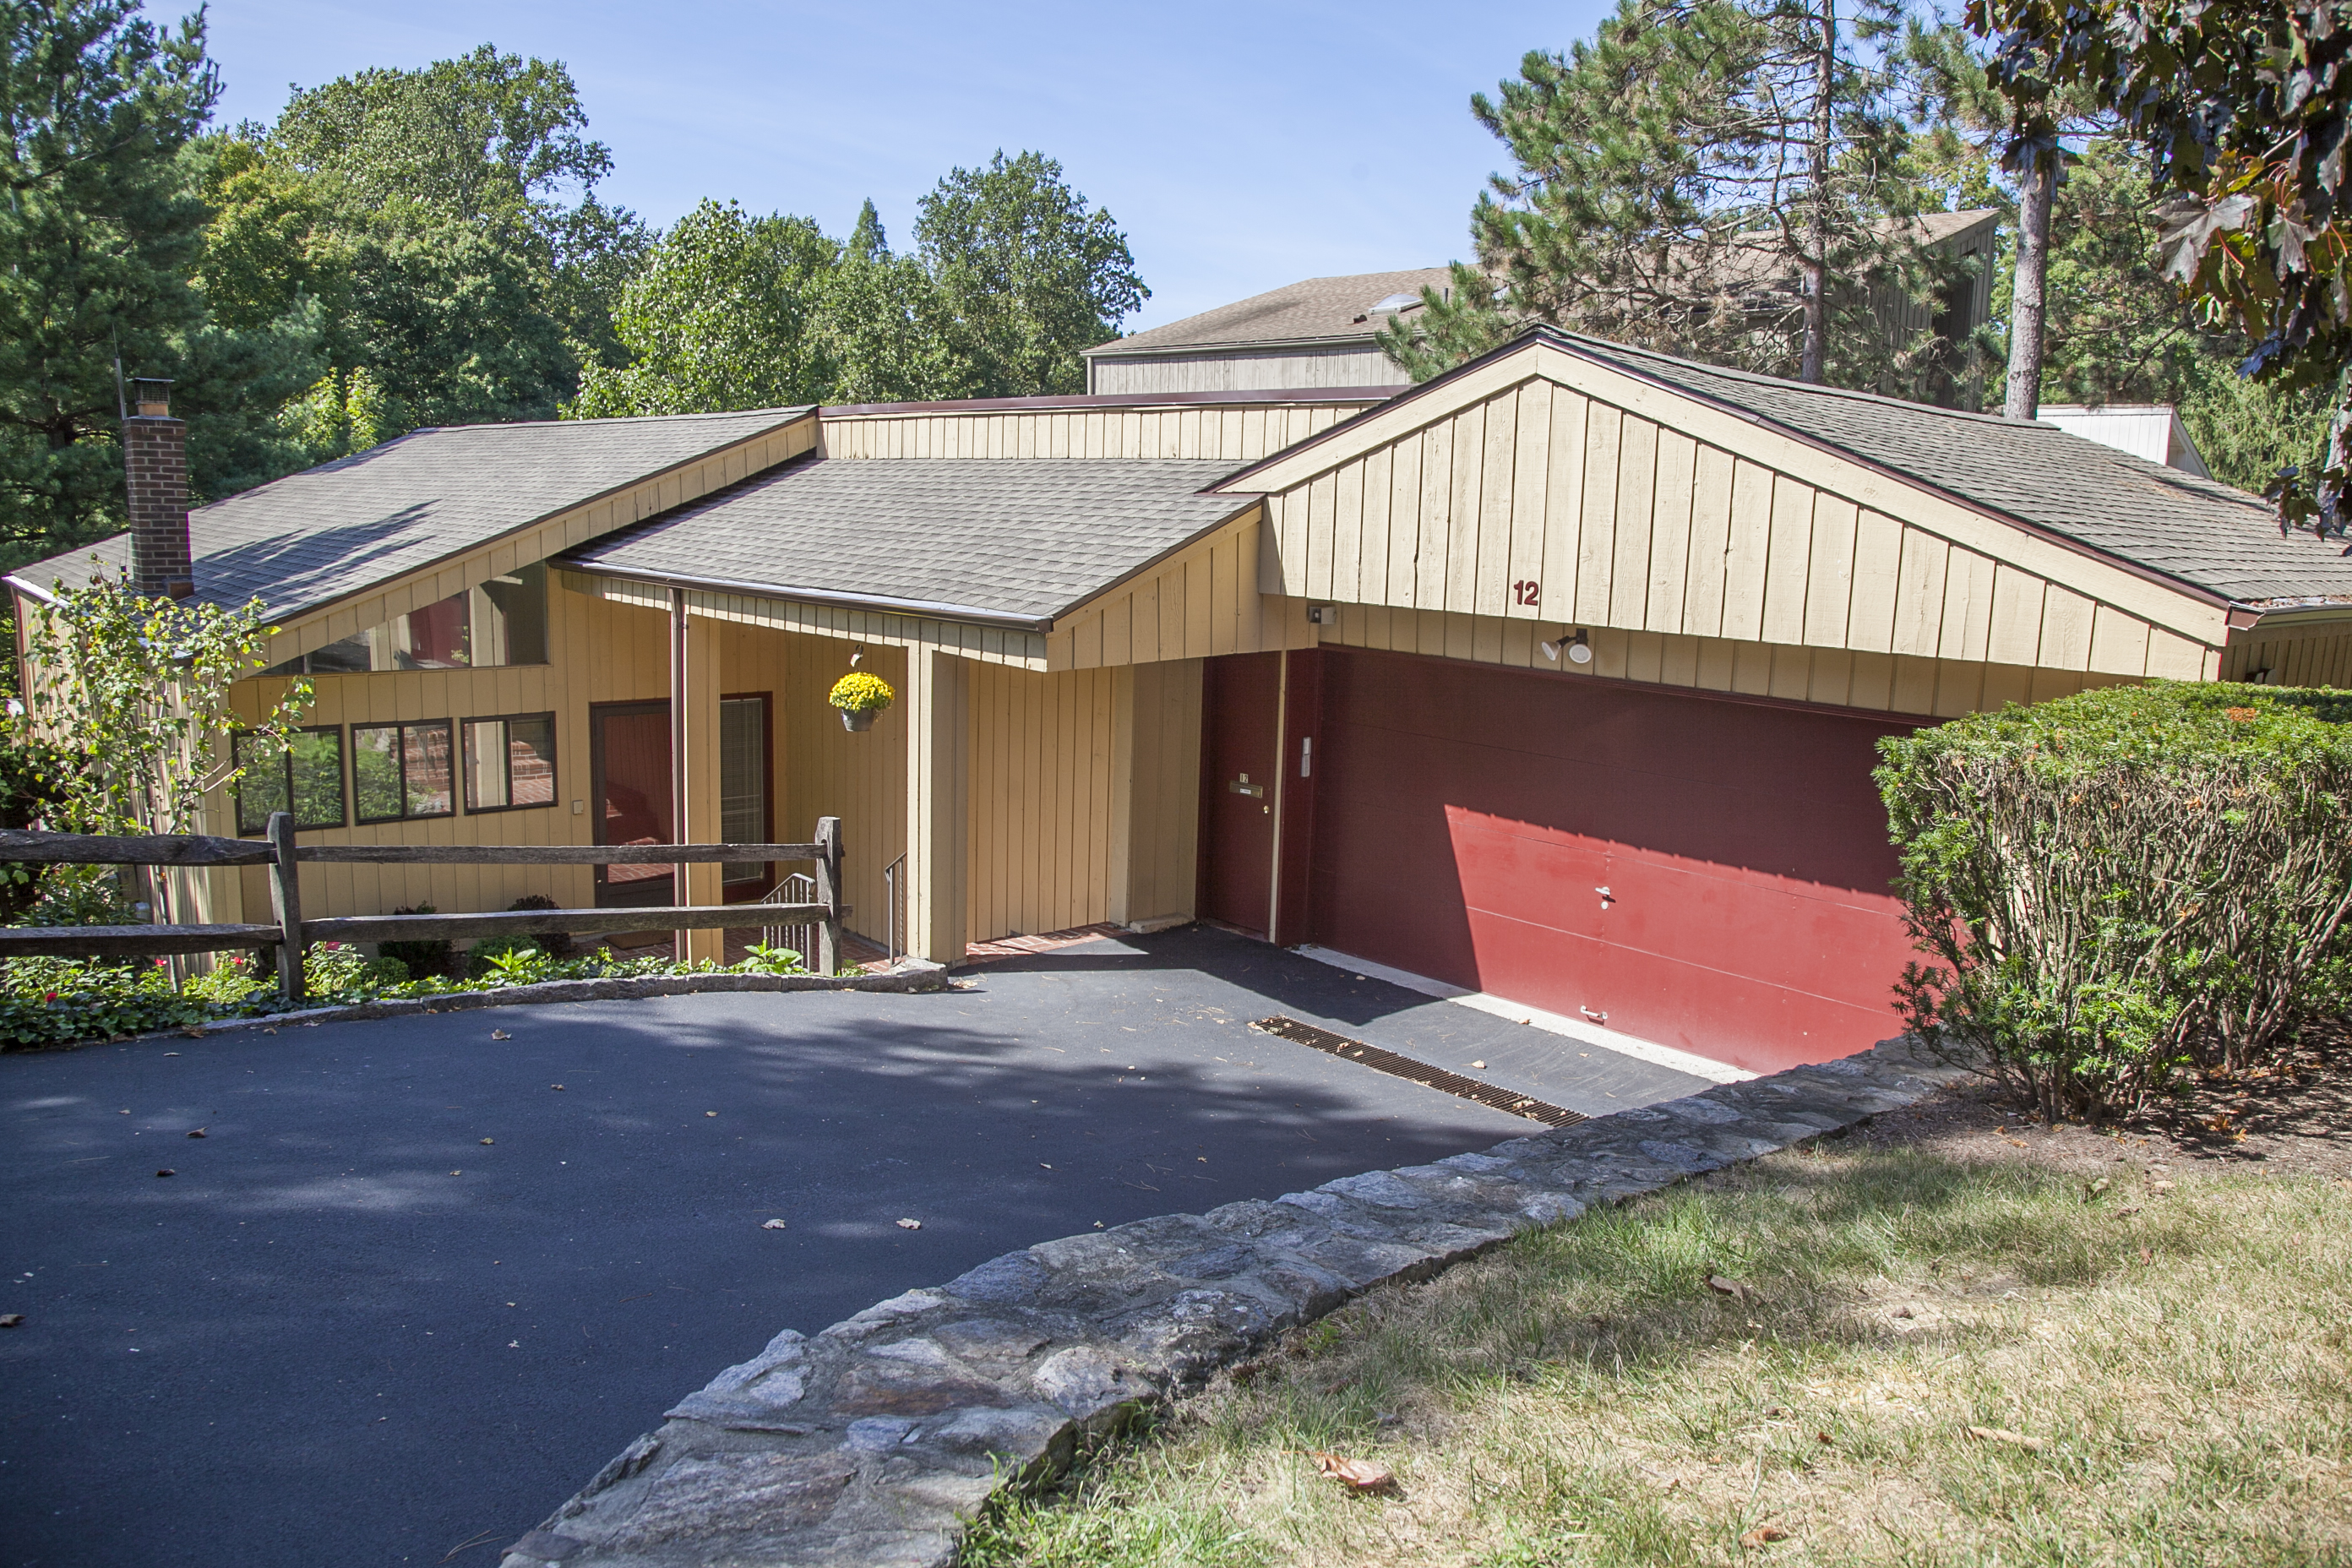 Single Family Home for Sale at 12 Talcott Road Rye Brook, New York, 10573 United States